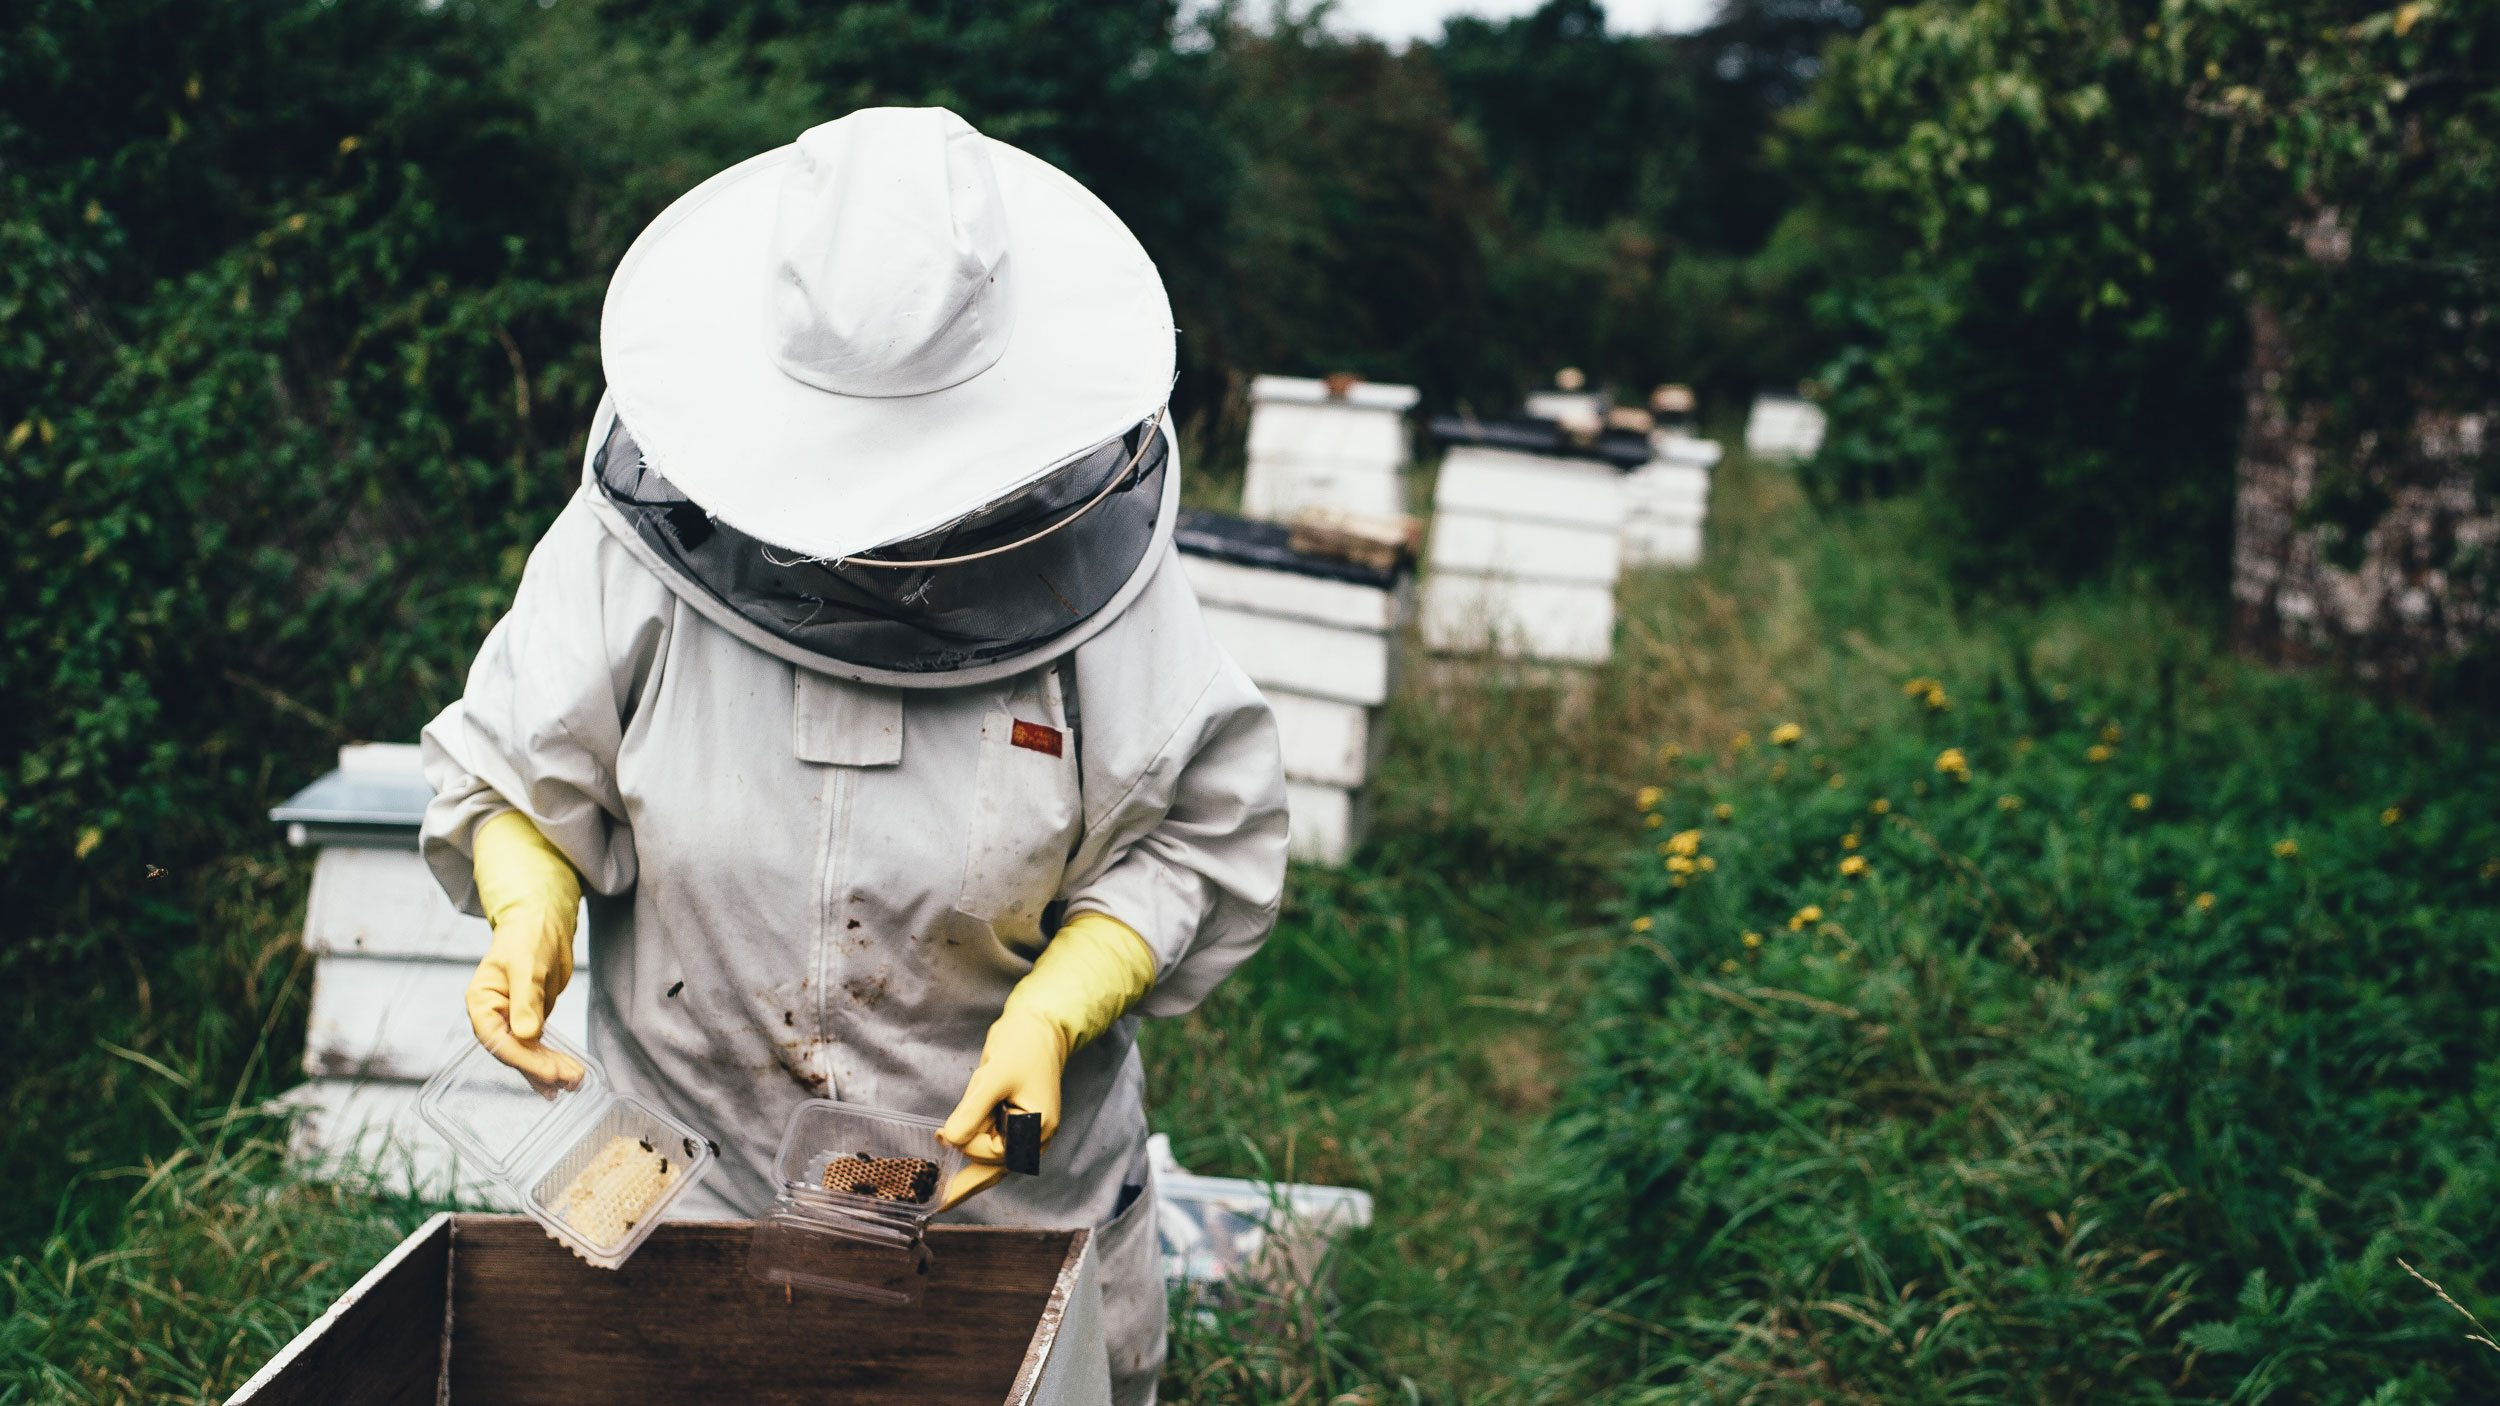 A beekeeper examines a hive box